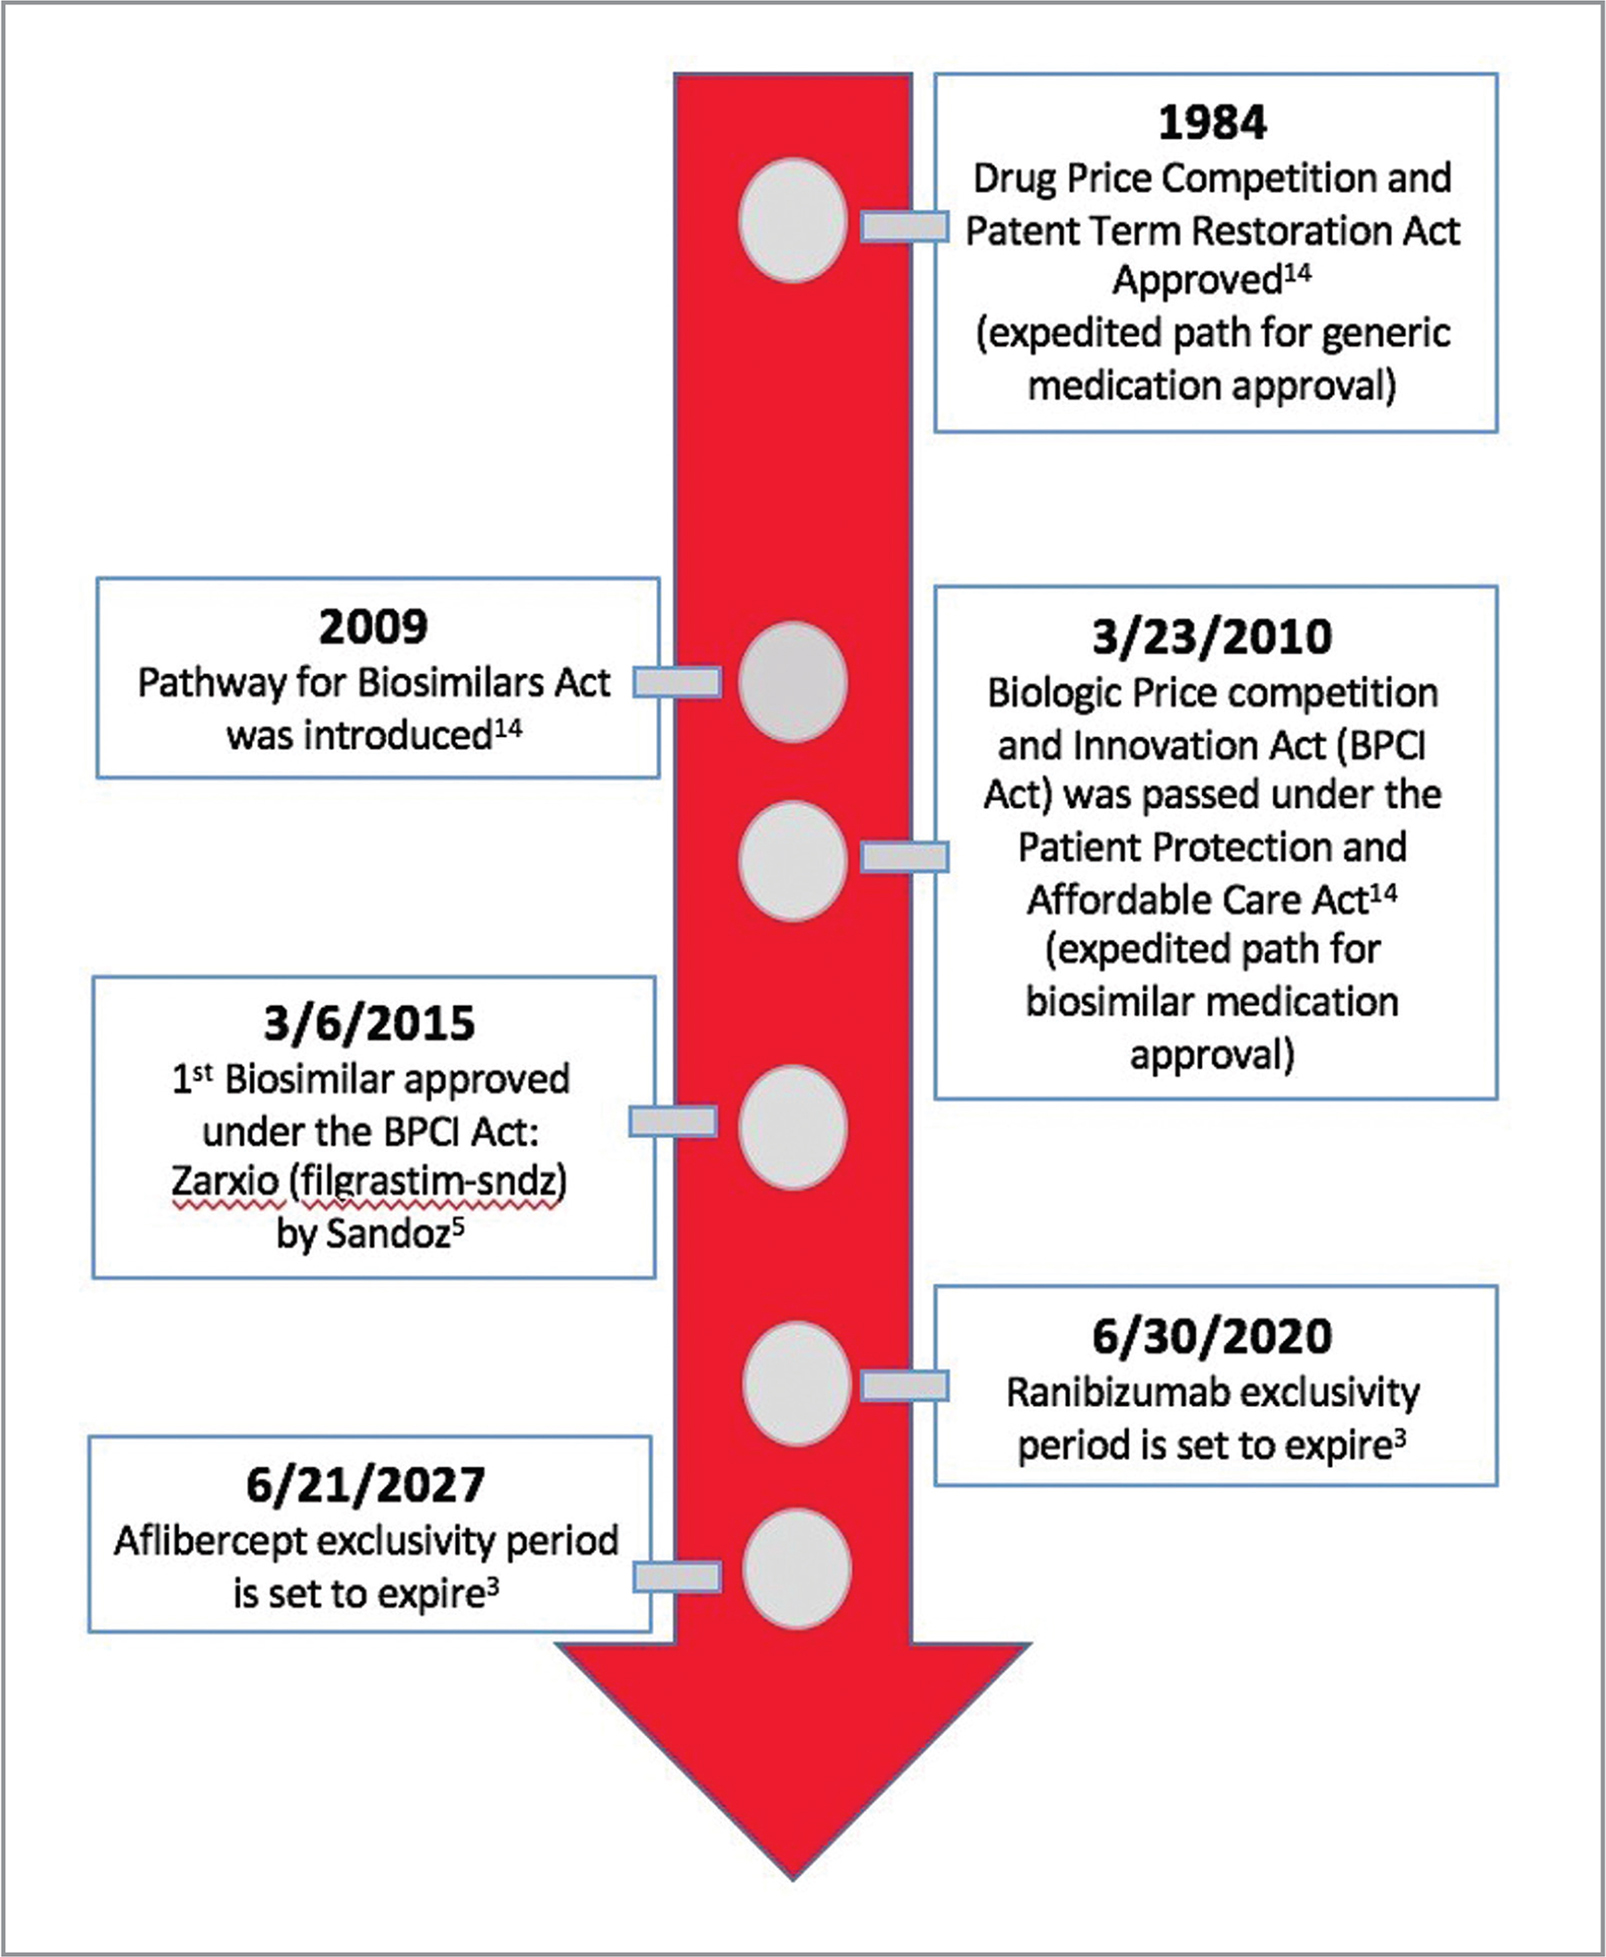 The U.S. federal regulation timeline highlighting important dates involving biosimilar legislation.